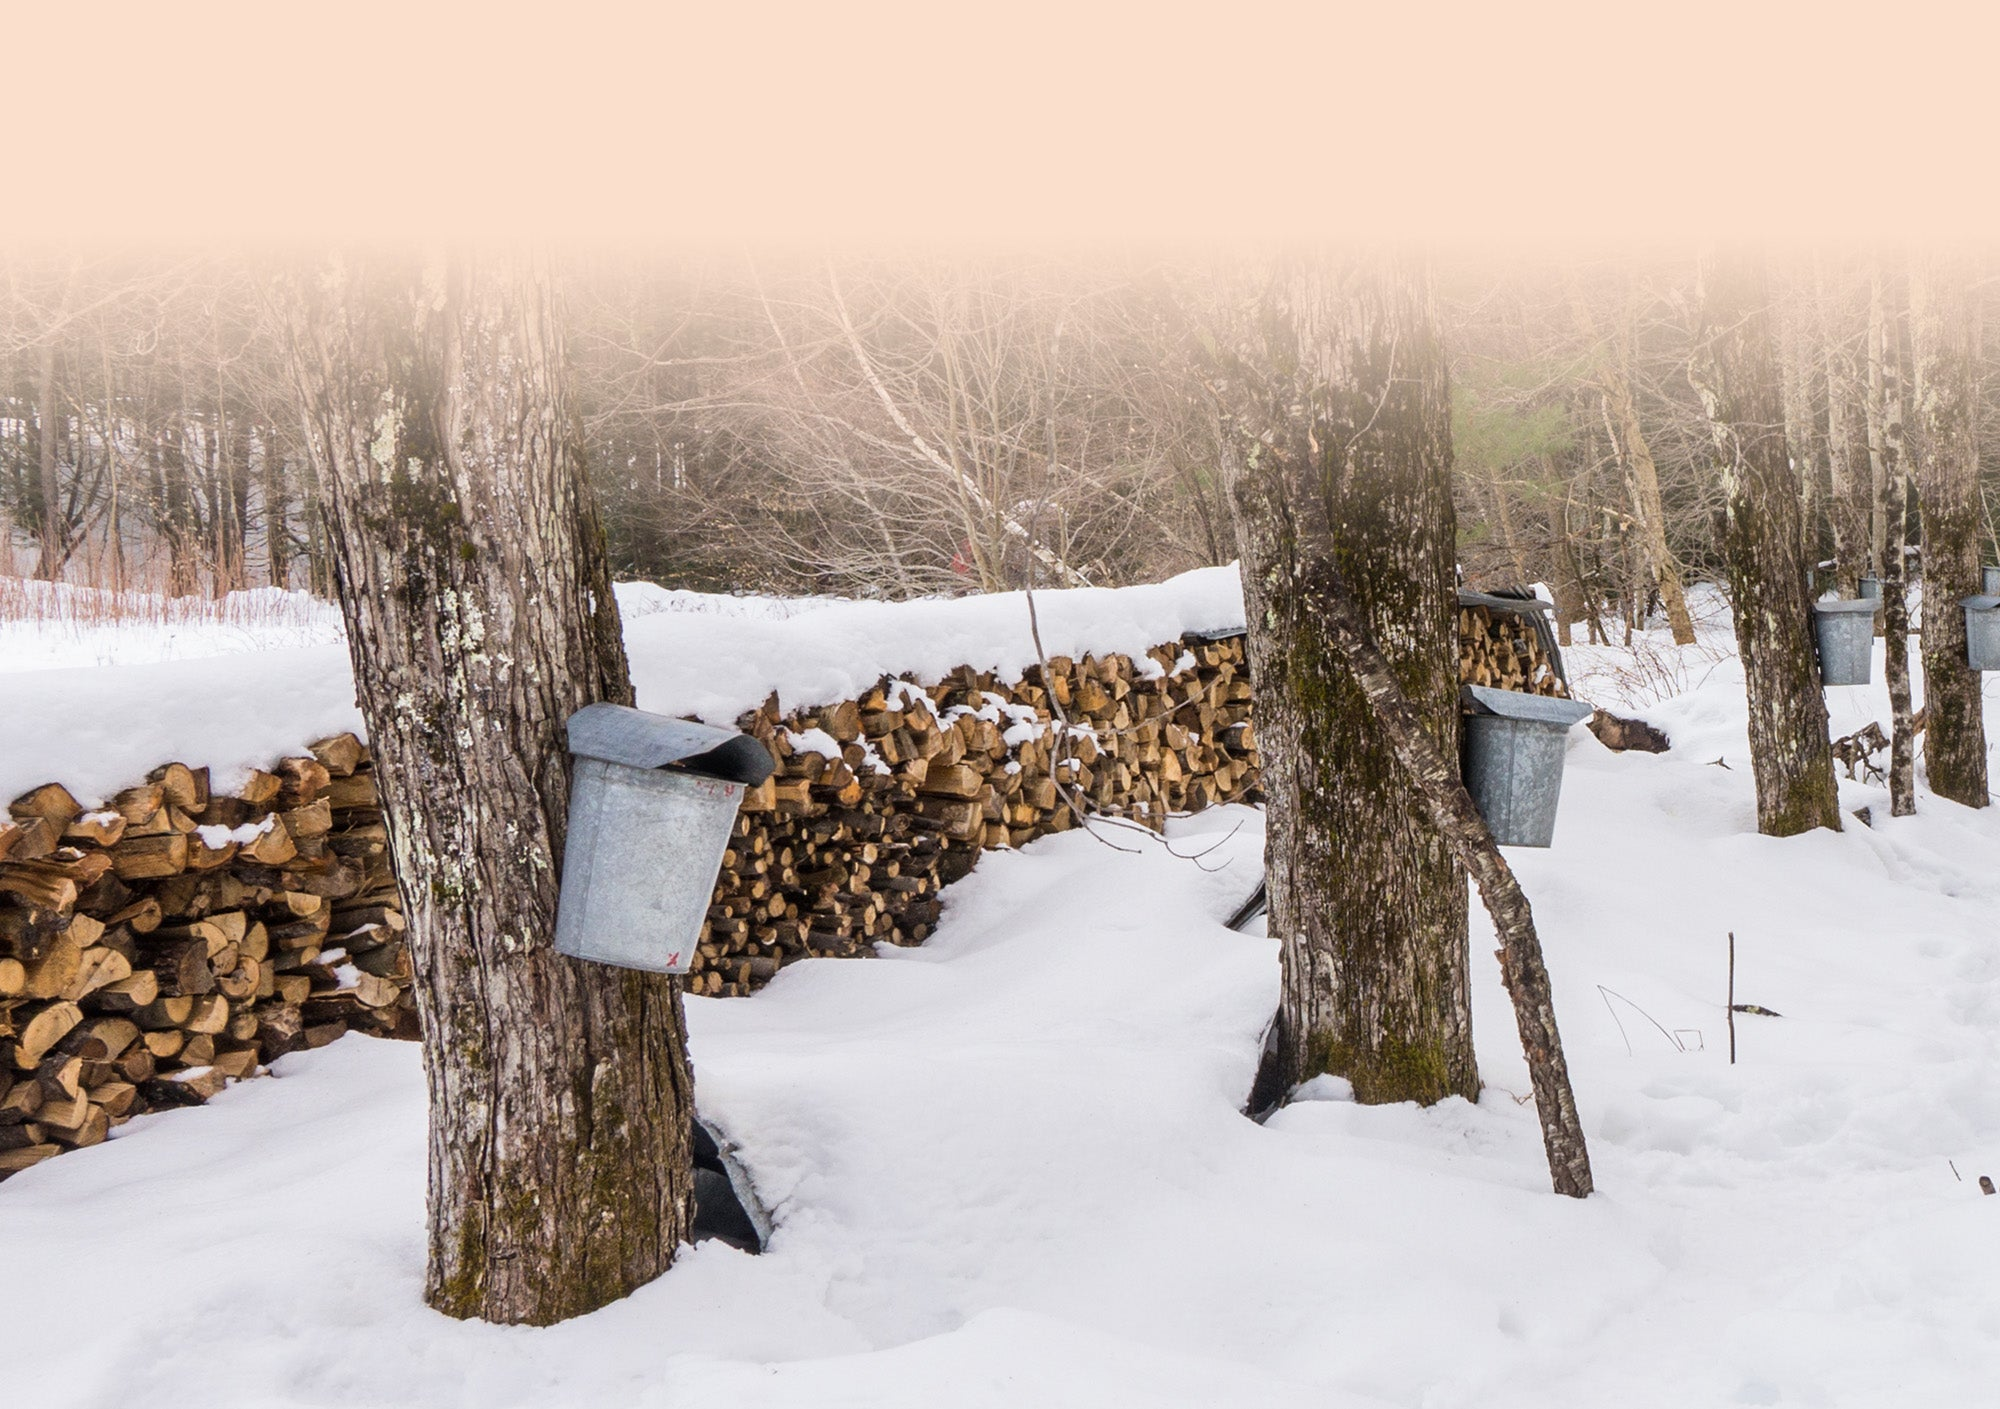 stacked wood on snowy ground